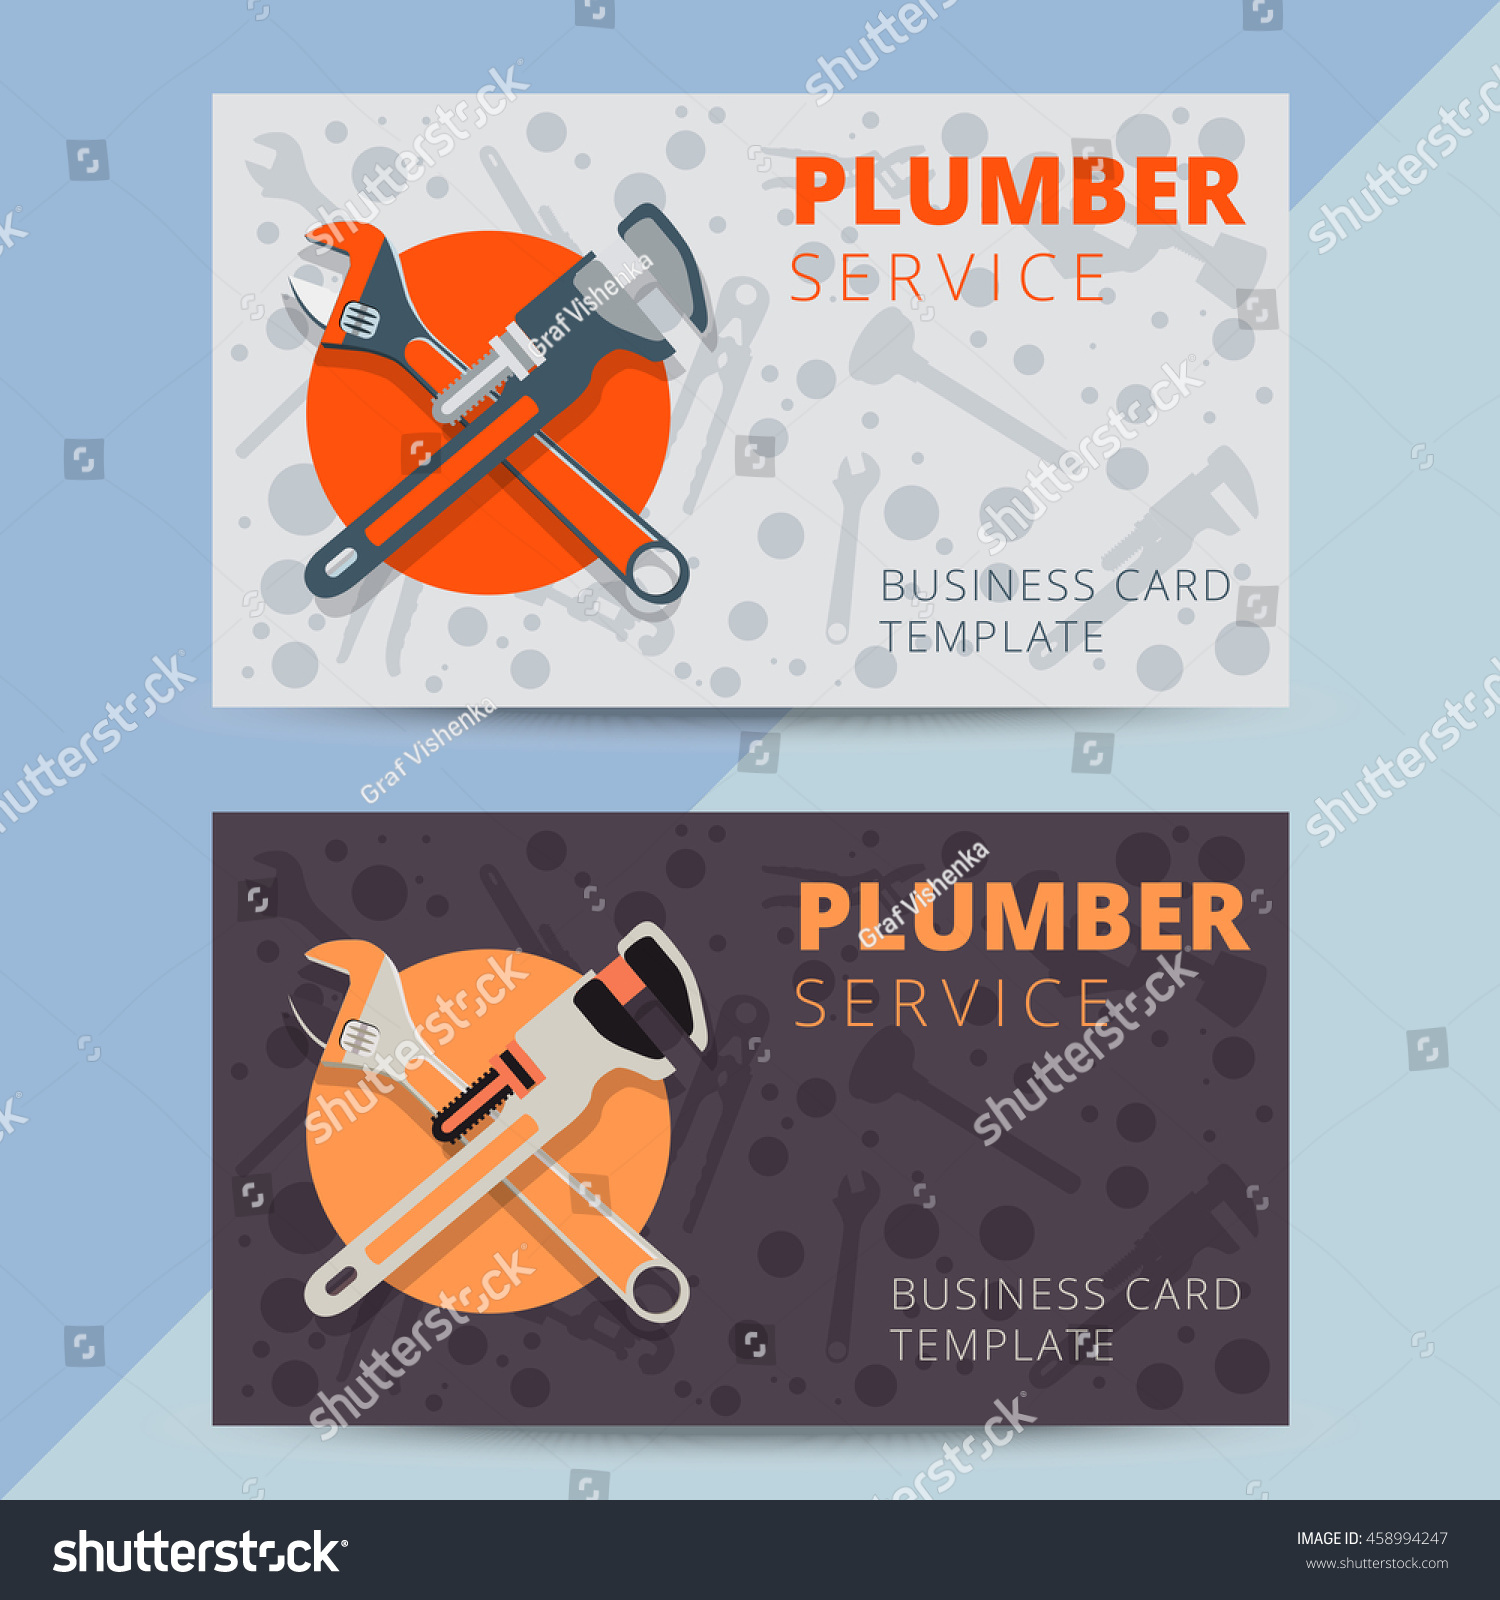 Luxury Gallery Of Handyman Business Cards Examples Business - Handyman business card template